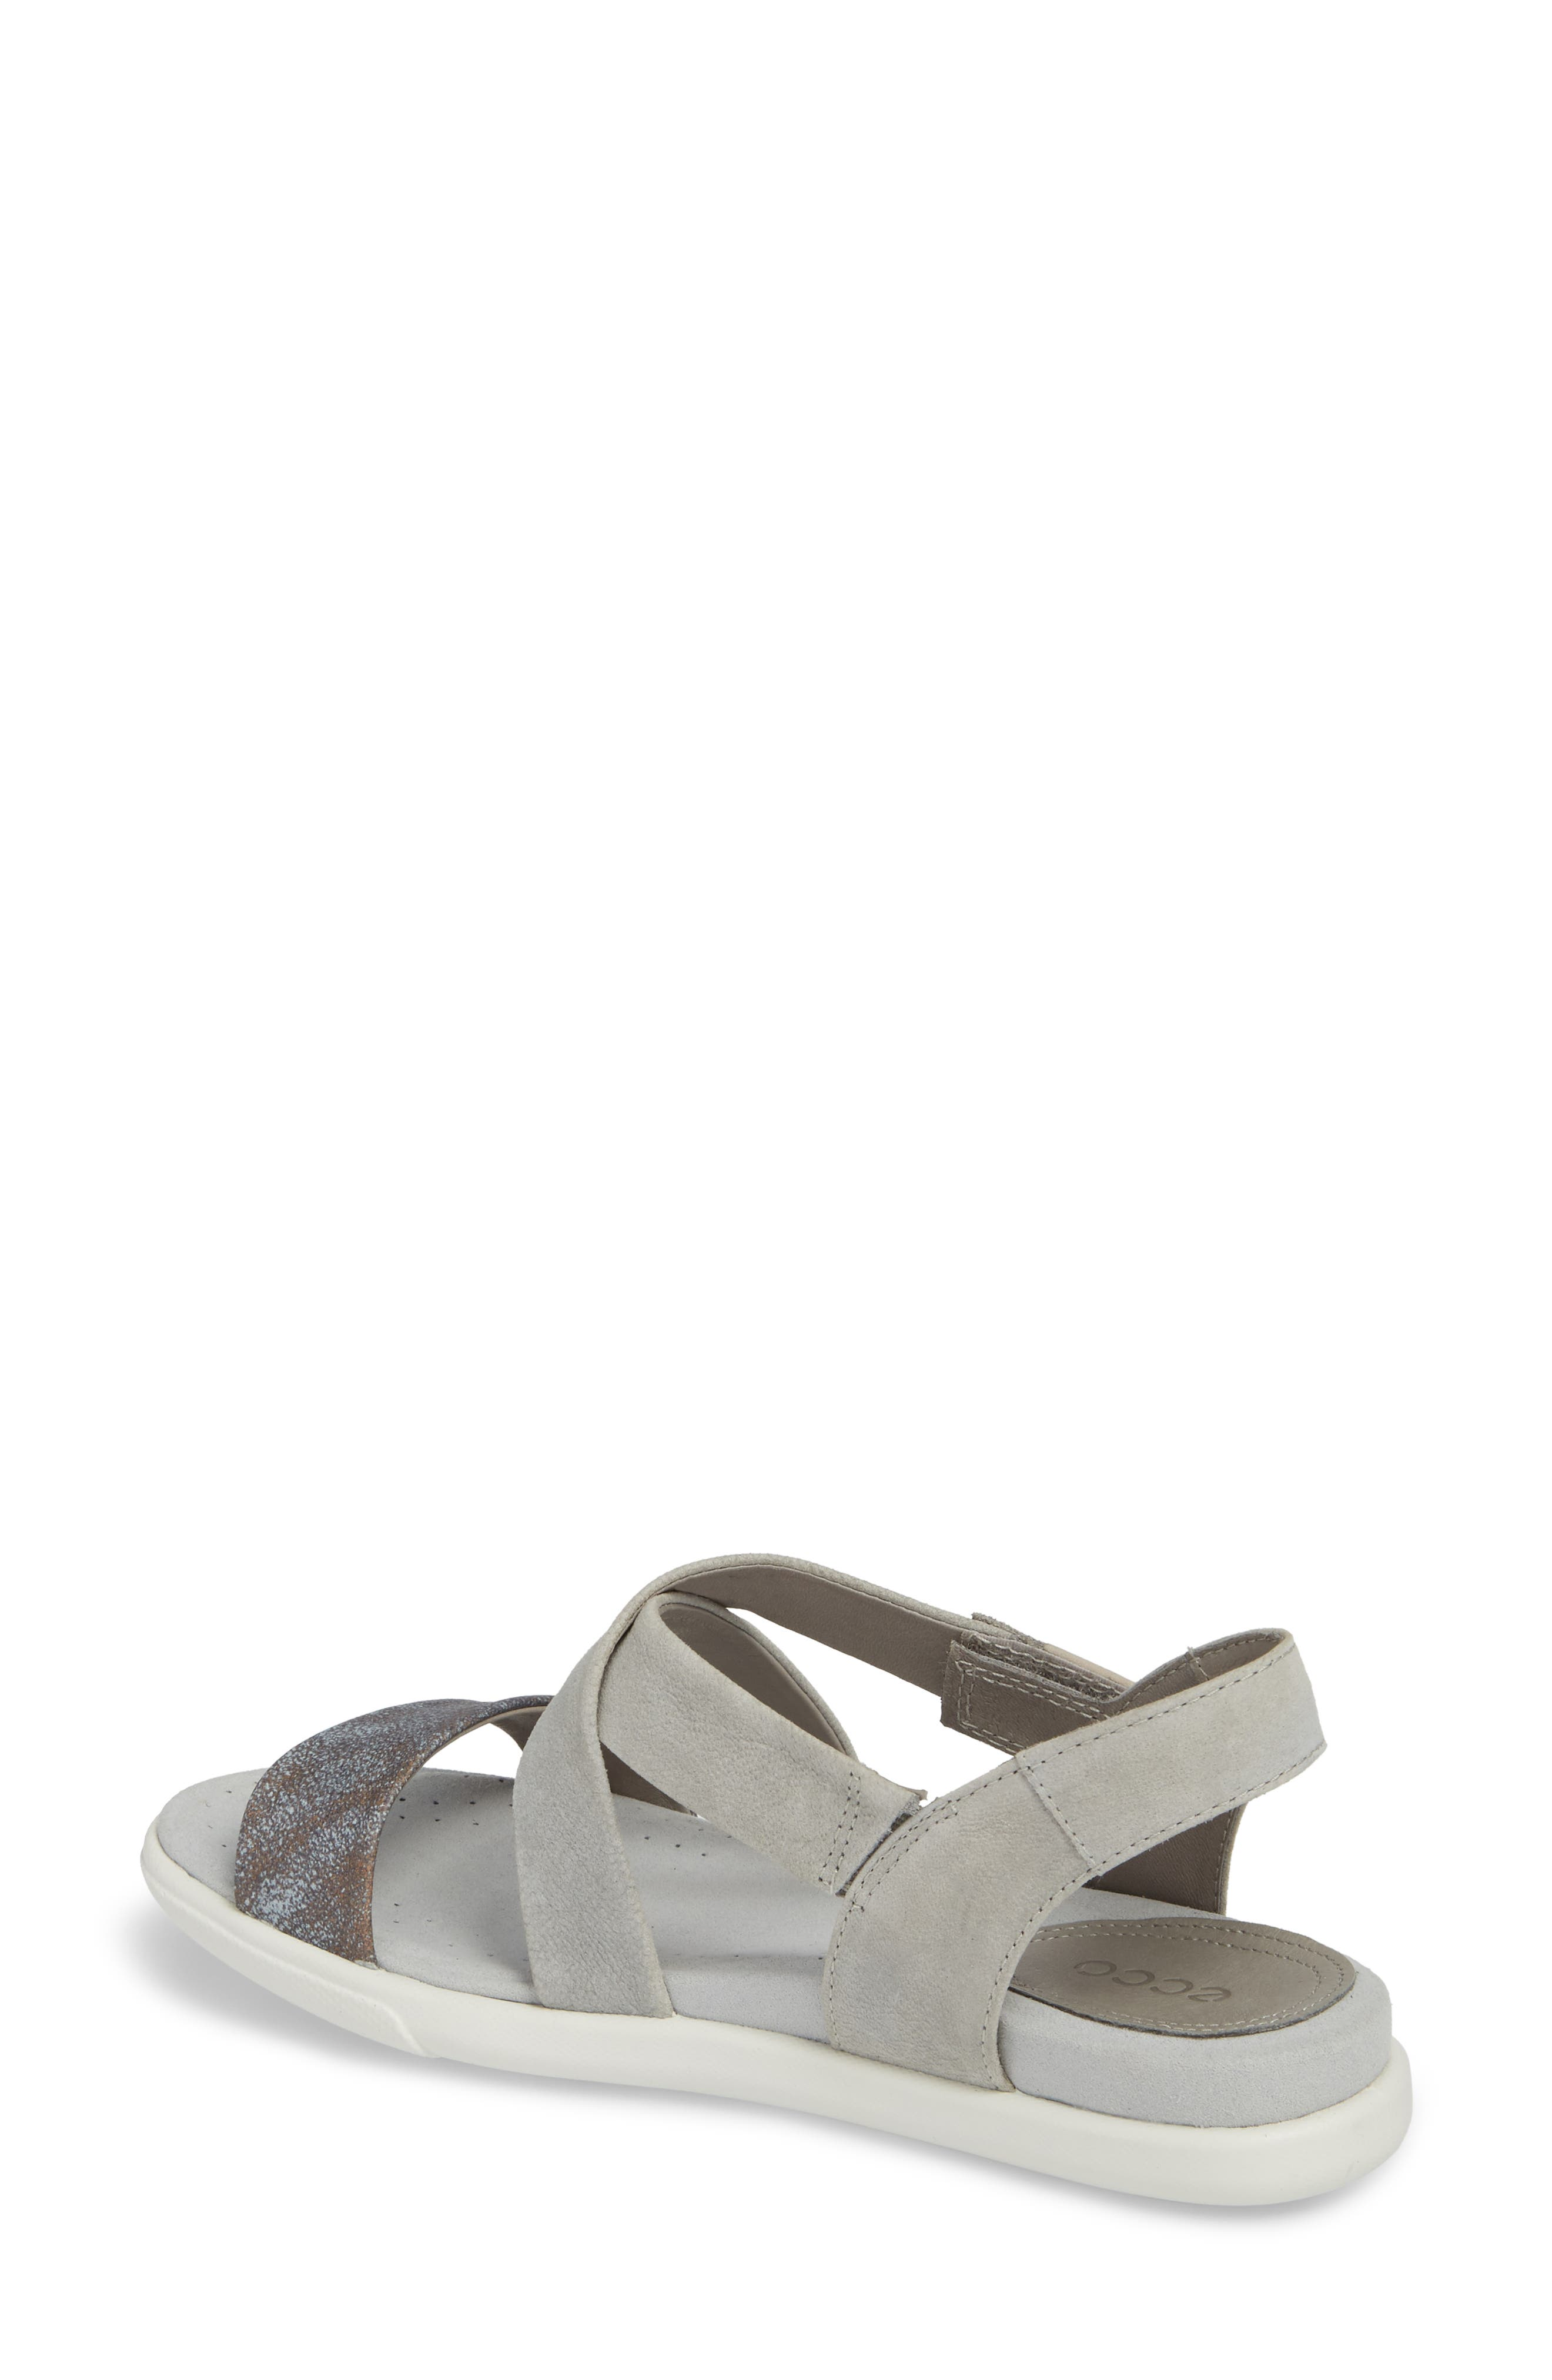 Damara Cross-Strap Sandal,                             Alternate thumbnail 9, color,